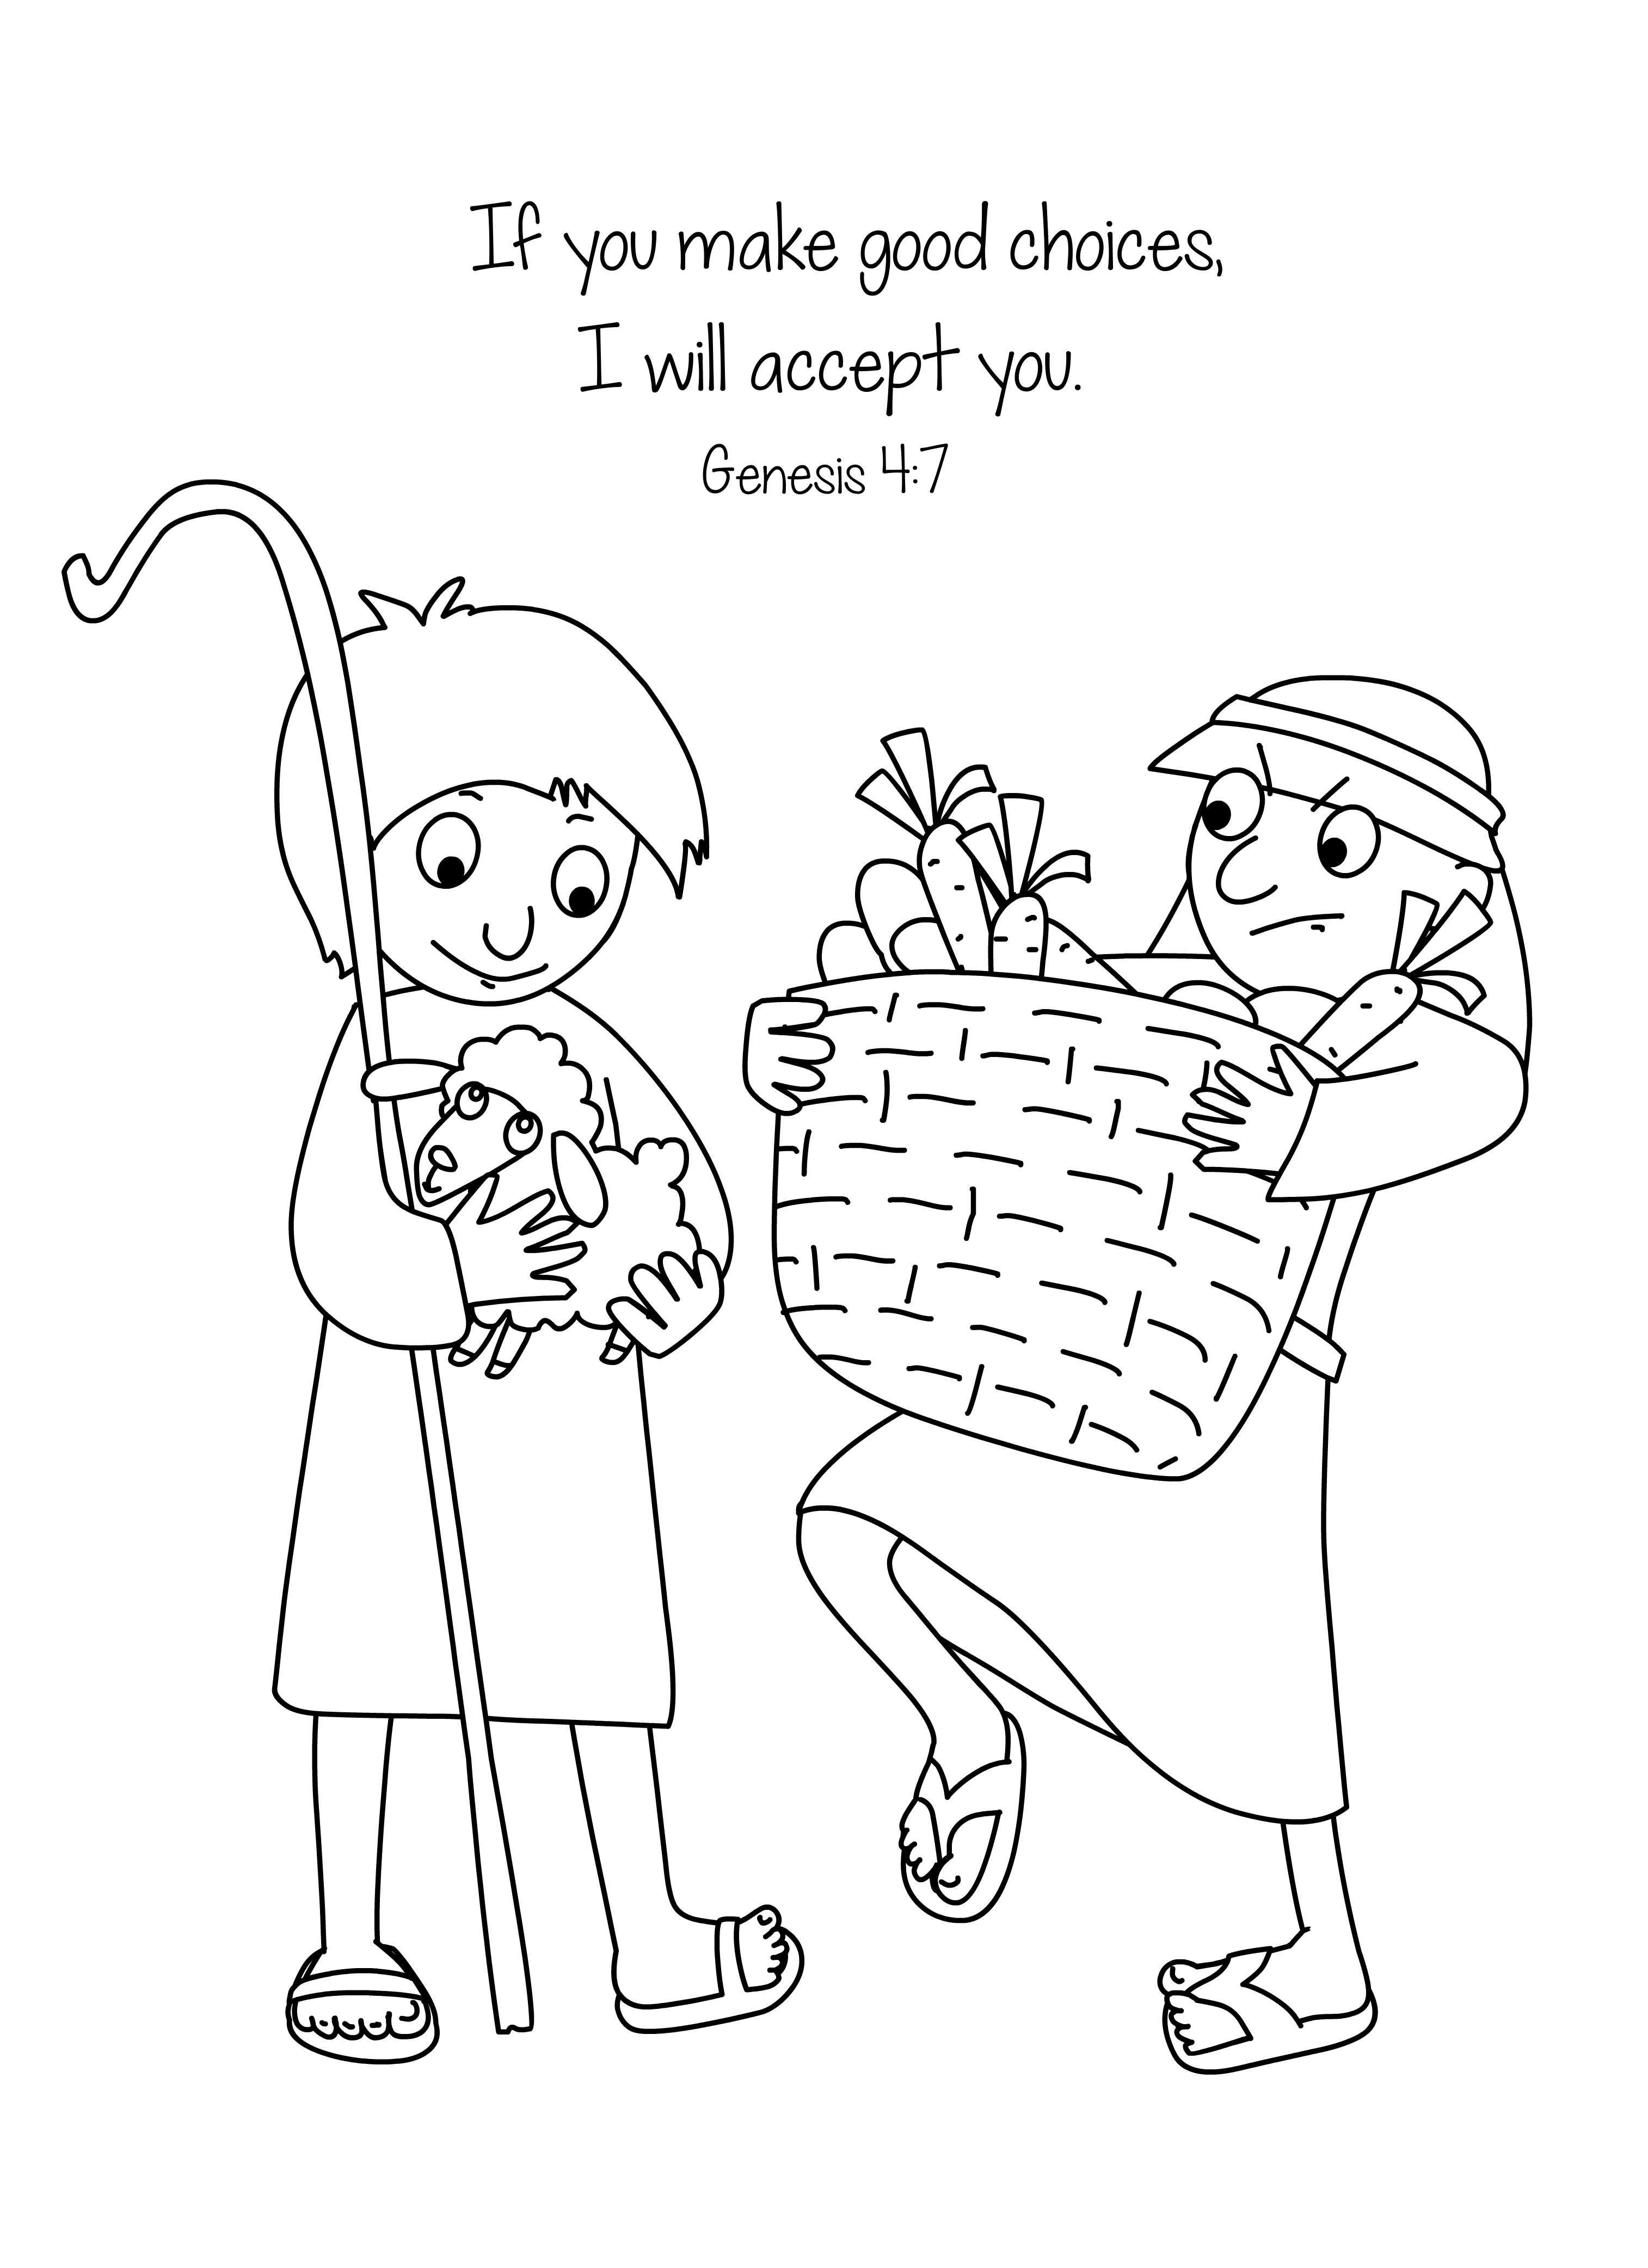 bible coloring pages for preschoolers bible stories coloring pages bible preschoolers for pages coloring